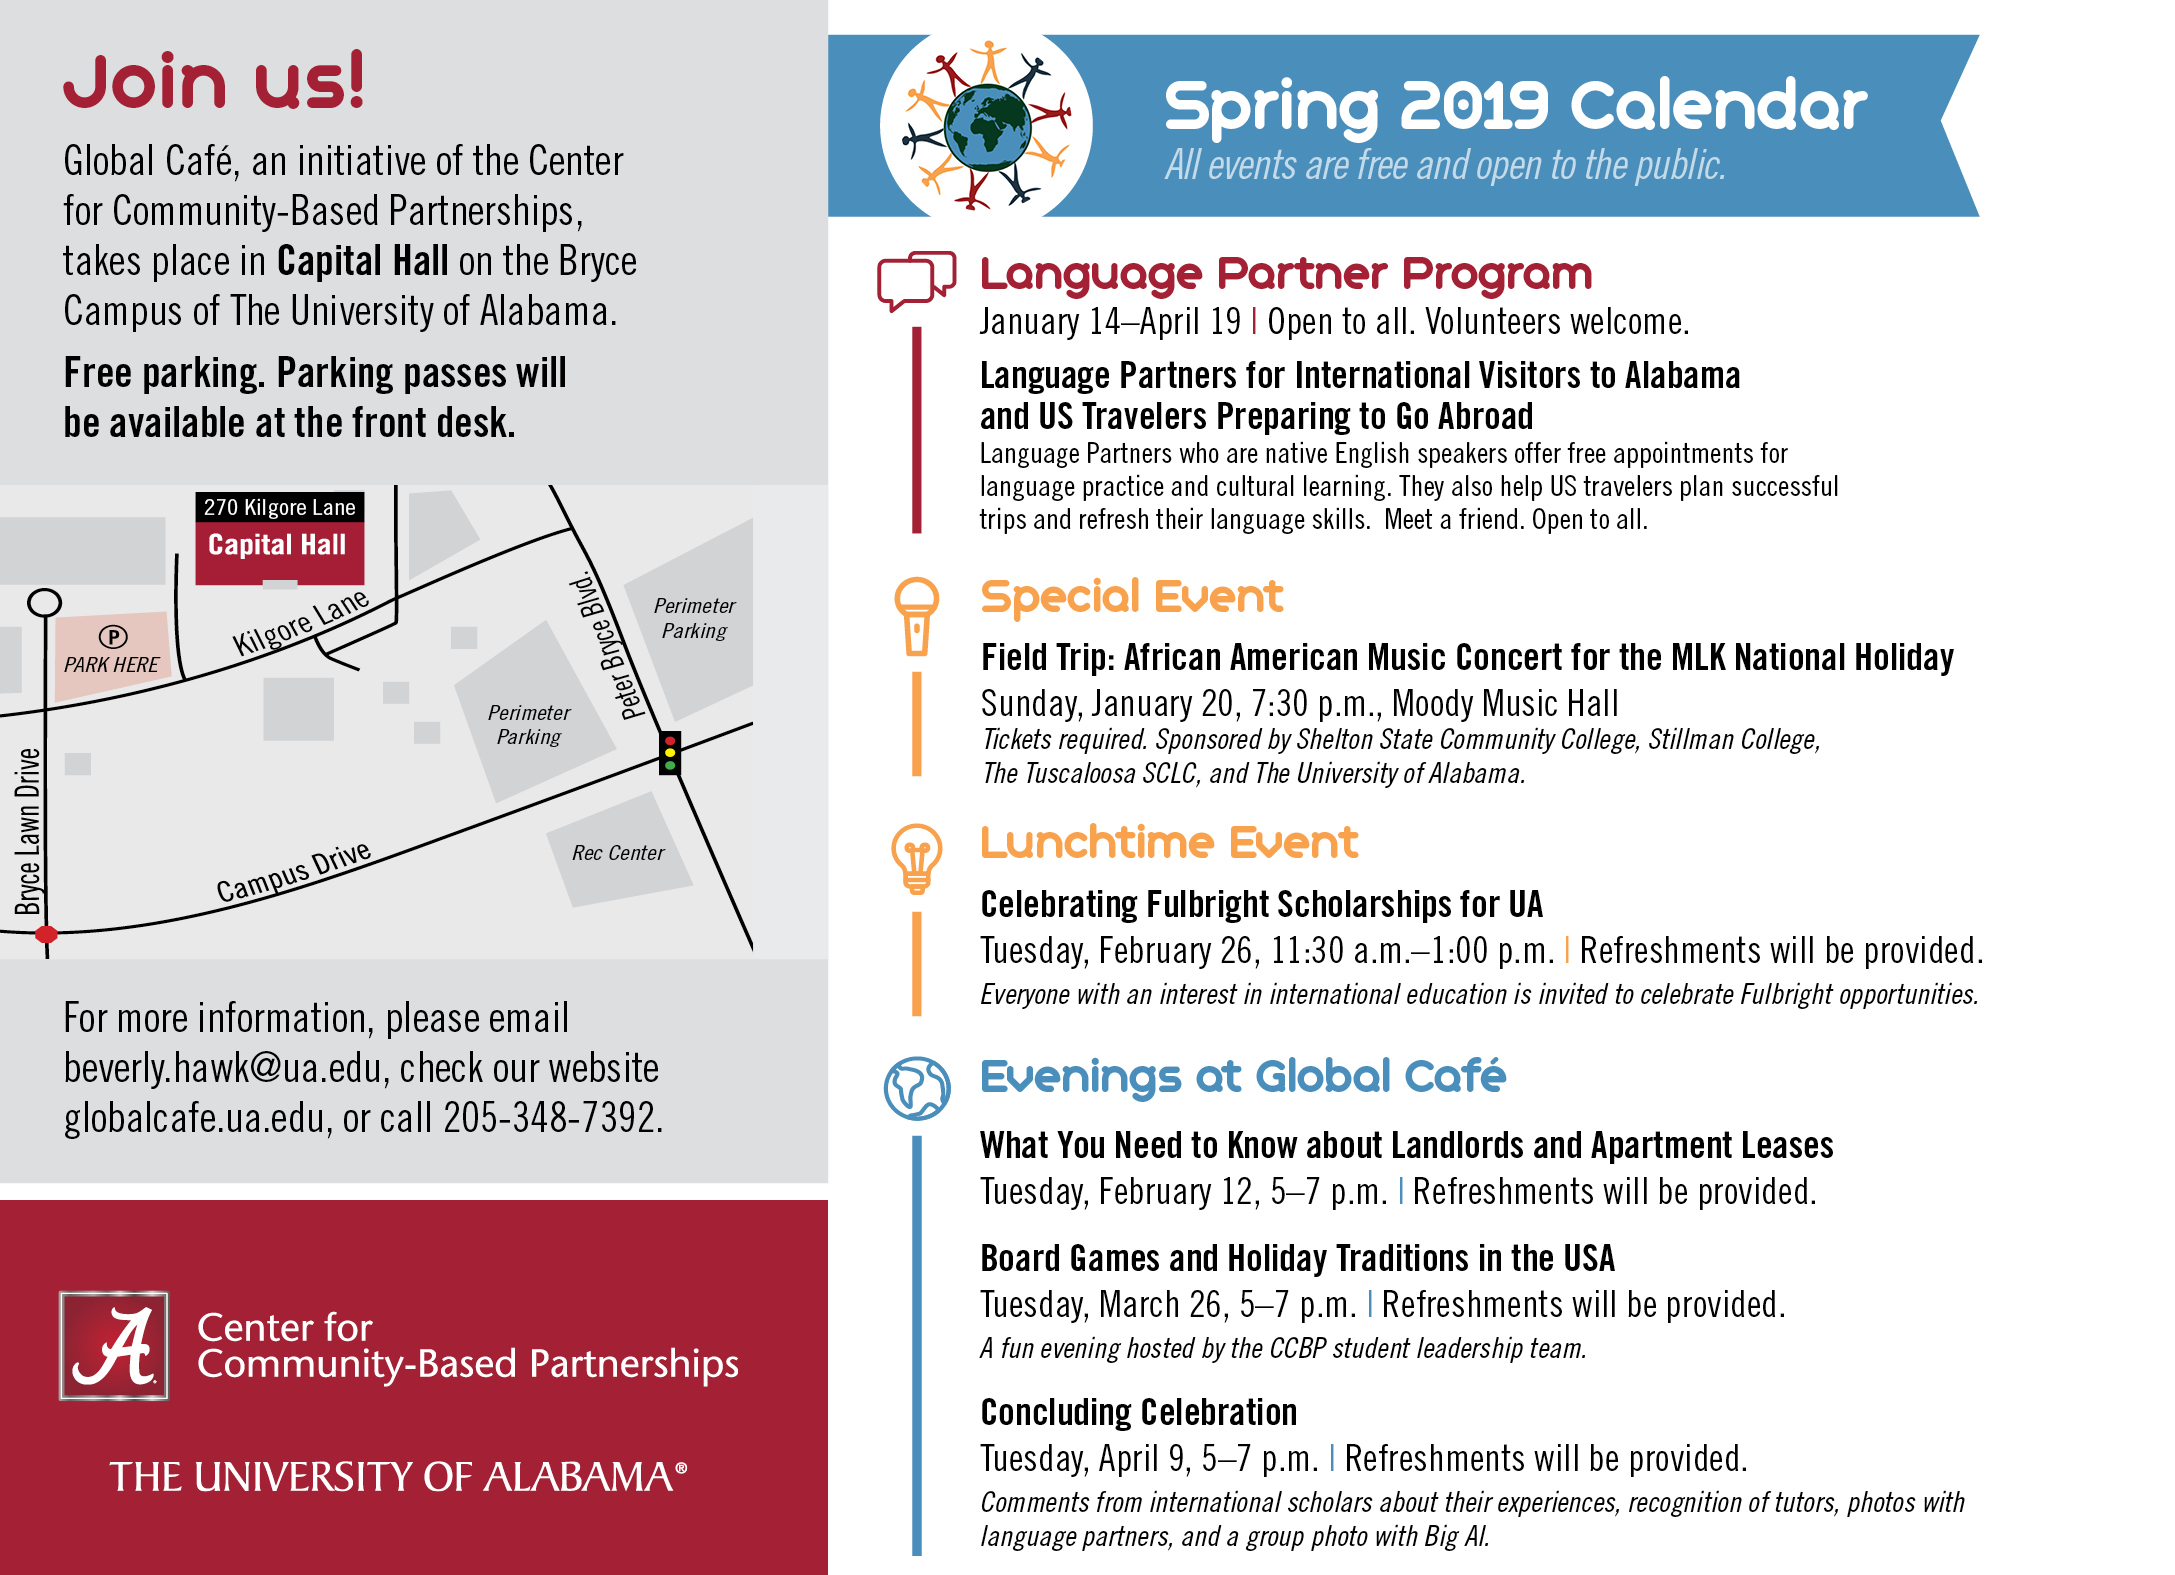 Global Café events calendar for the spring 2019 semester.